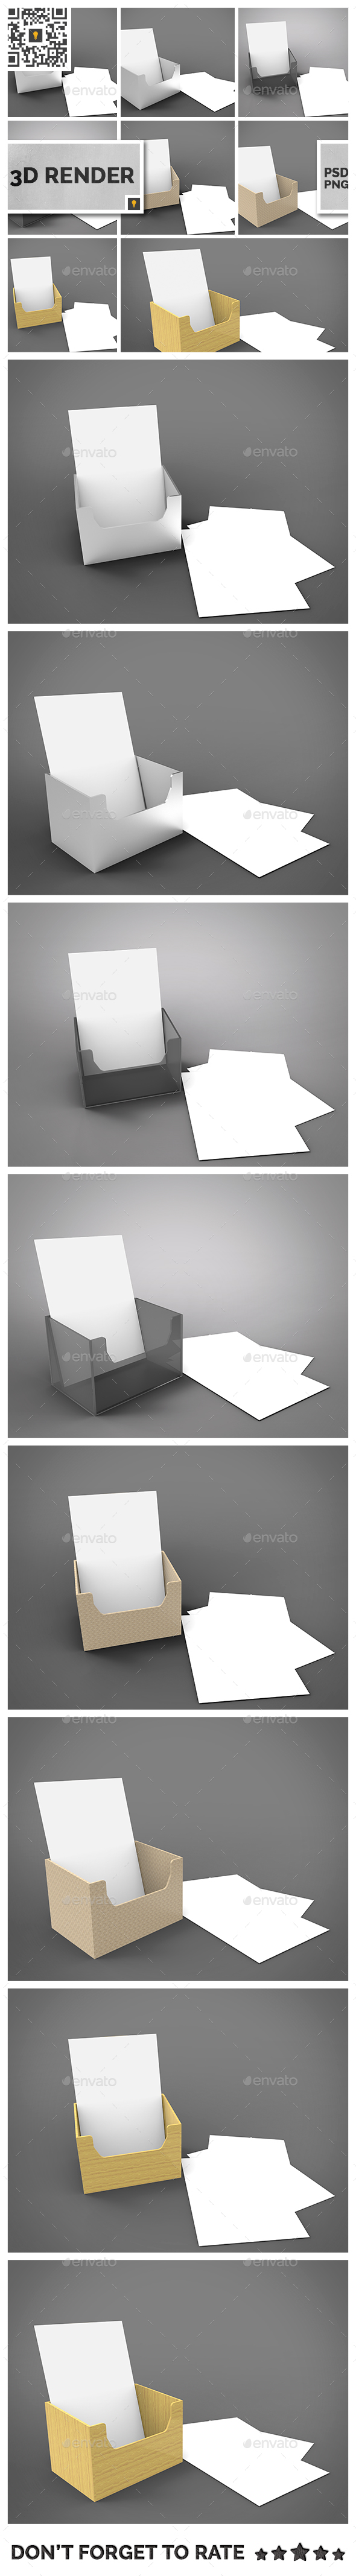 Flyer Holder 3D Render - Miscellaneous 3D Renders